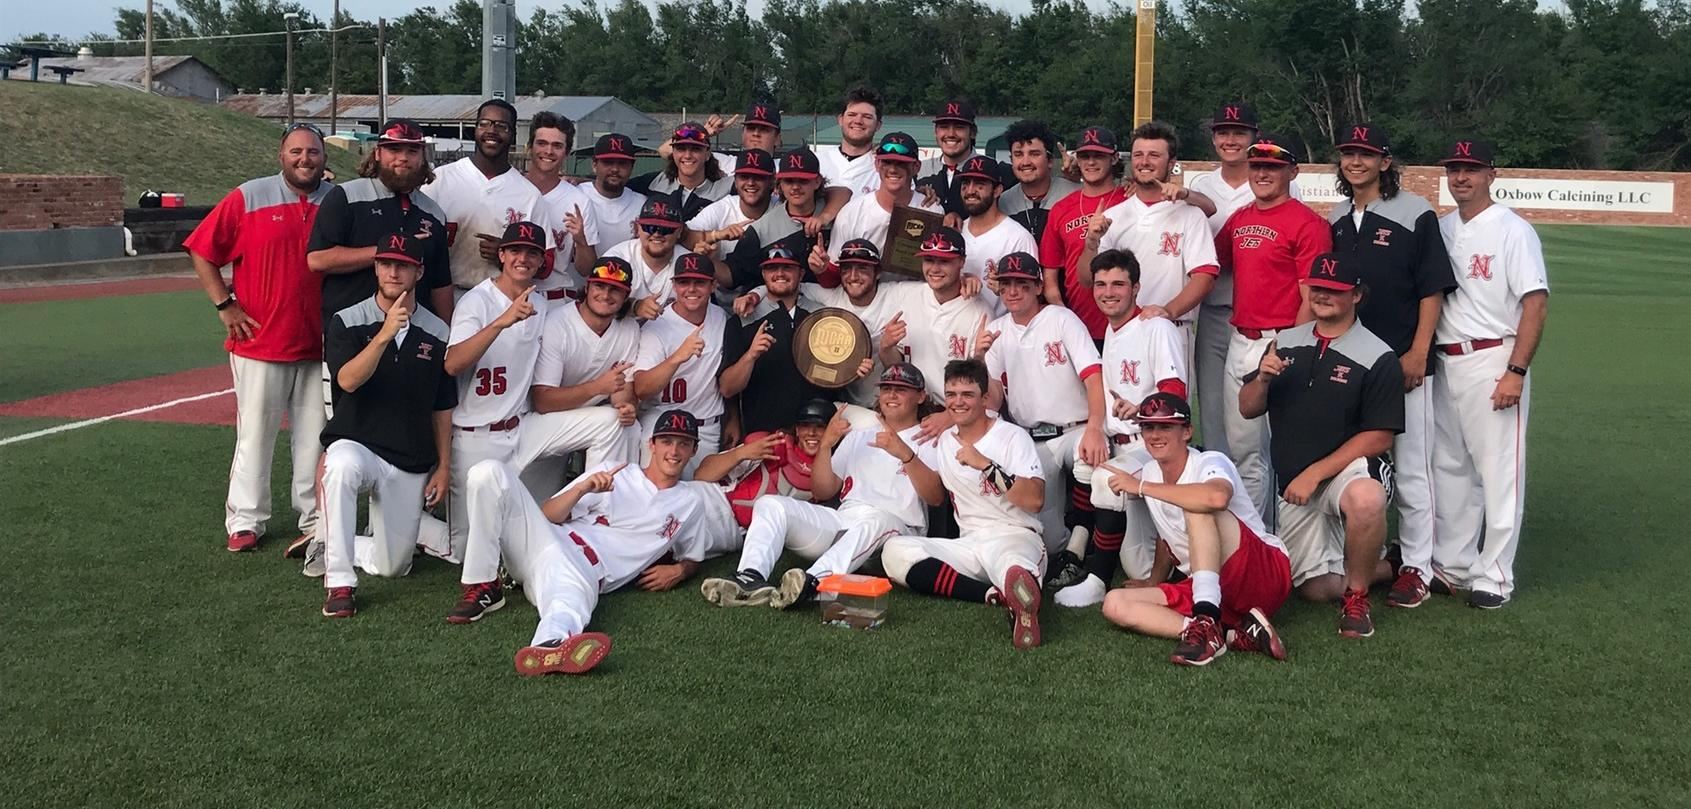 Jets Win OG&E Region 2 Championship & Punch Ticket to NJCAA World Series